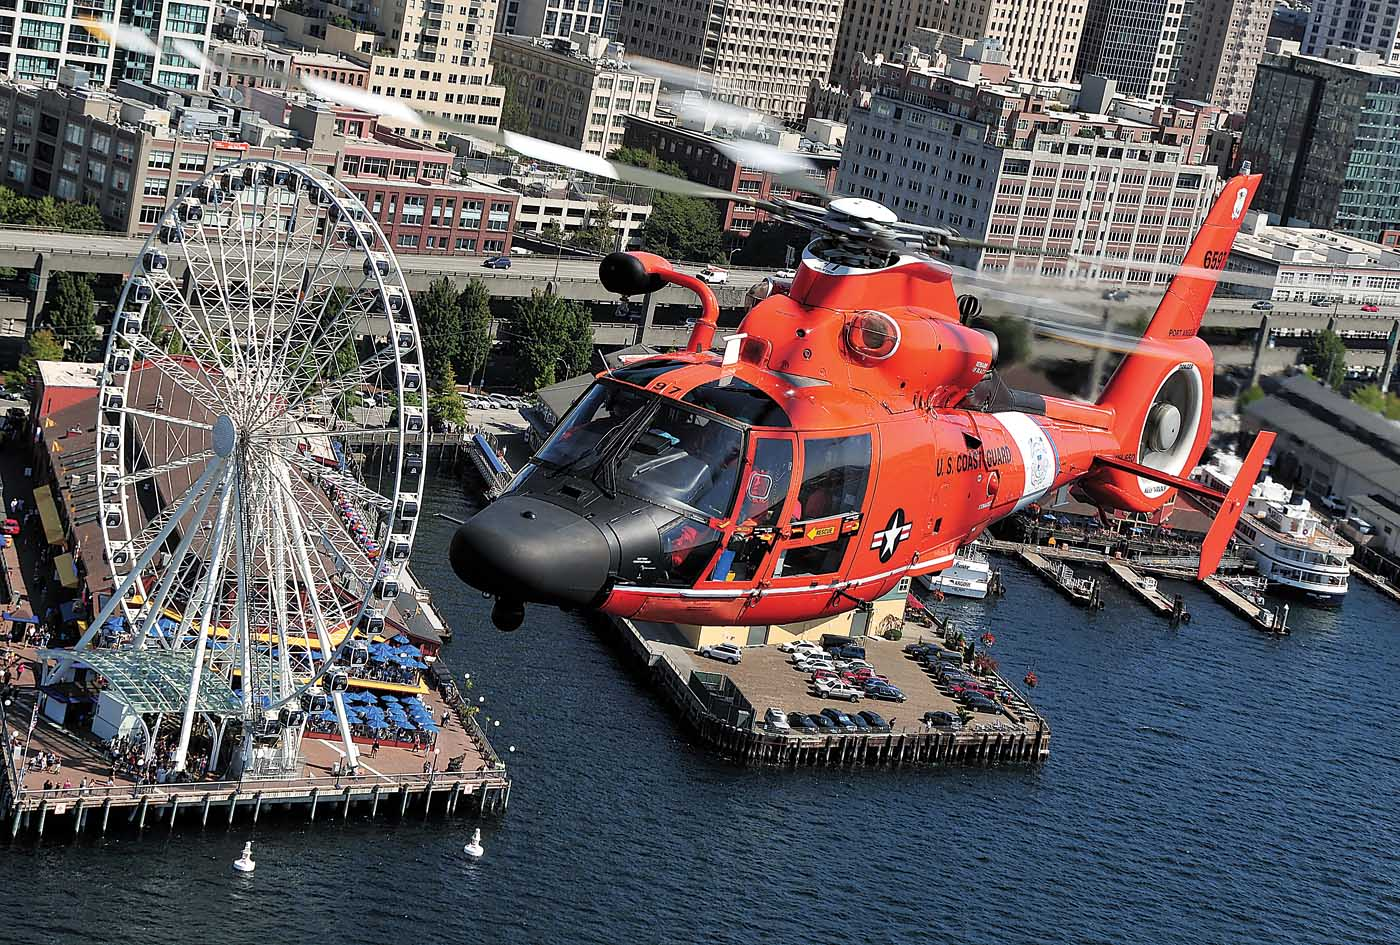 The operational area for U.S. Coast Guard Air Station Port Angeles includes Seattle's waterfront and harbor facilities. Here, an Airbus MH-65D flies past Seattle's Bay Pavilion. Skip Robinson Photo